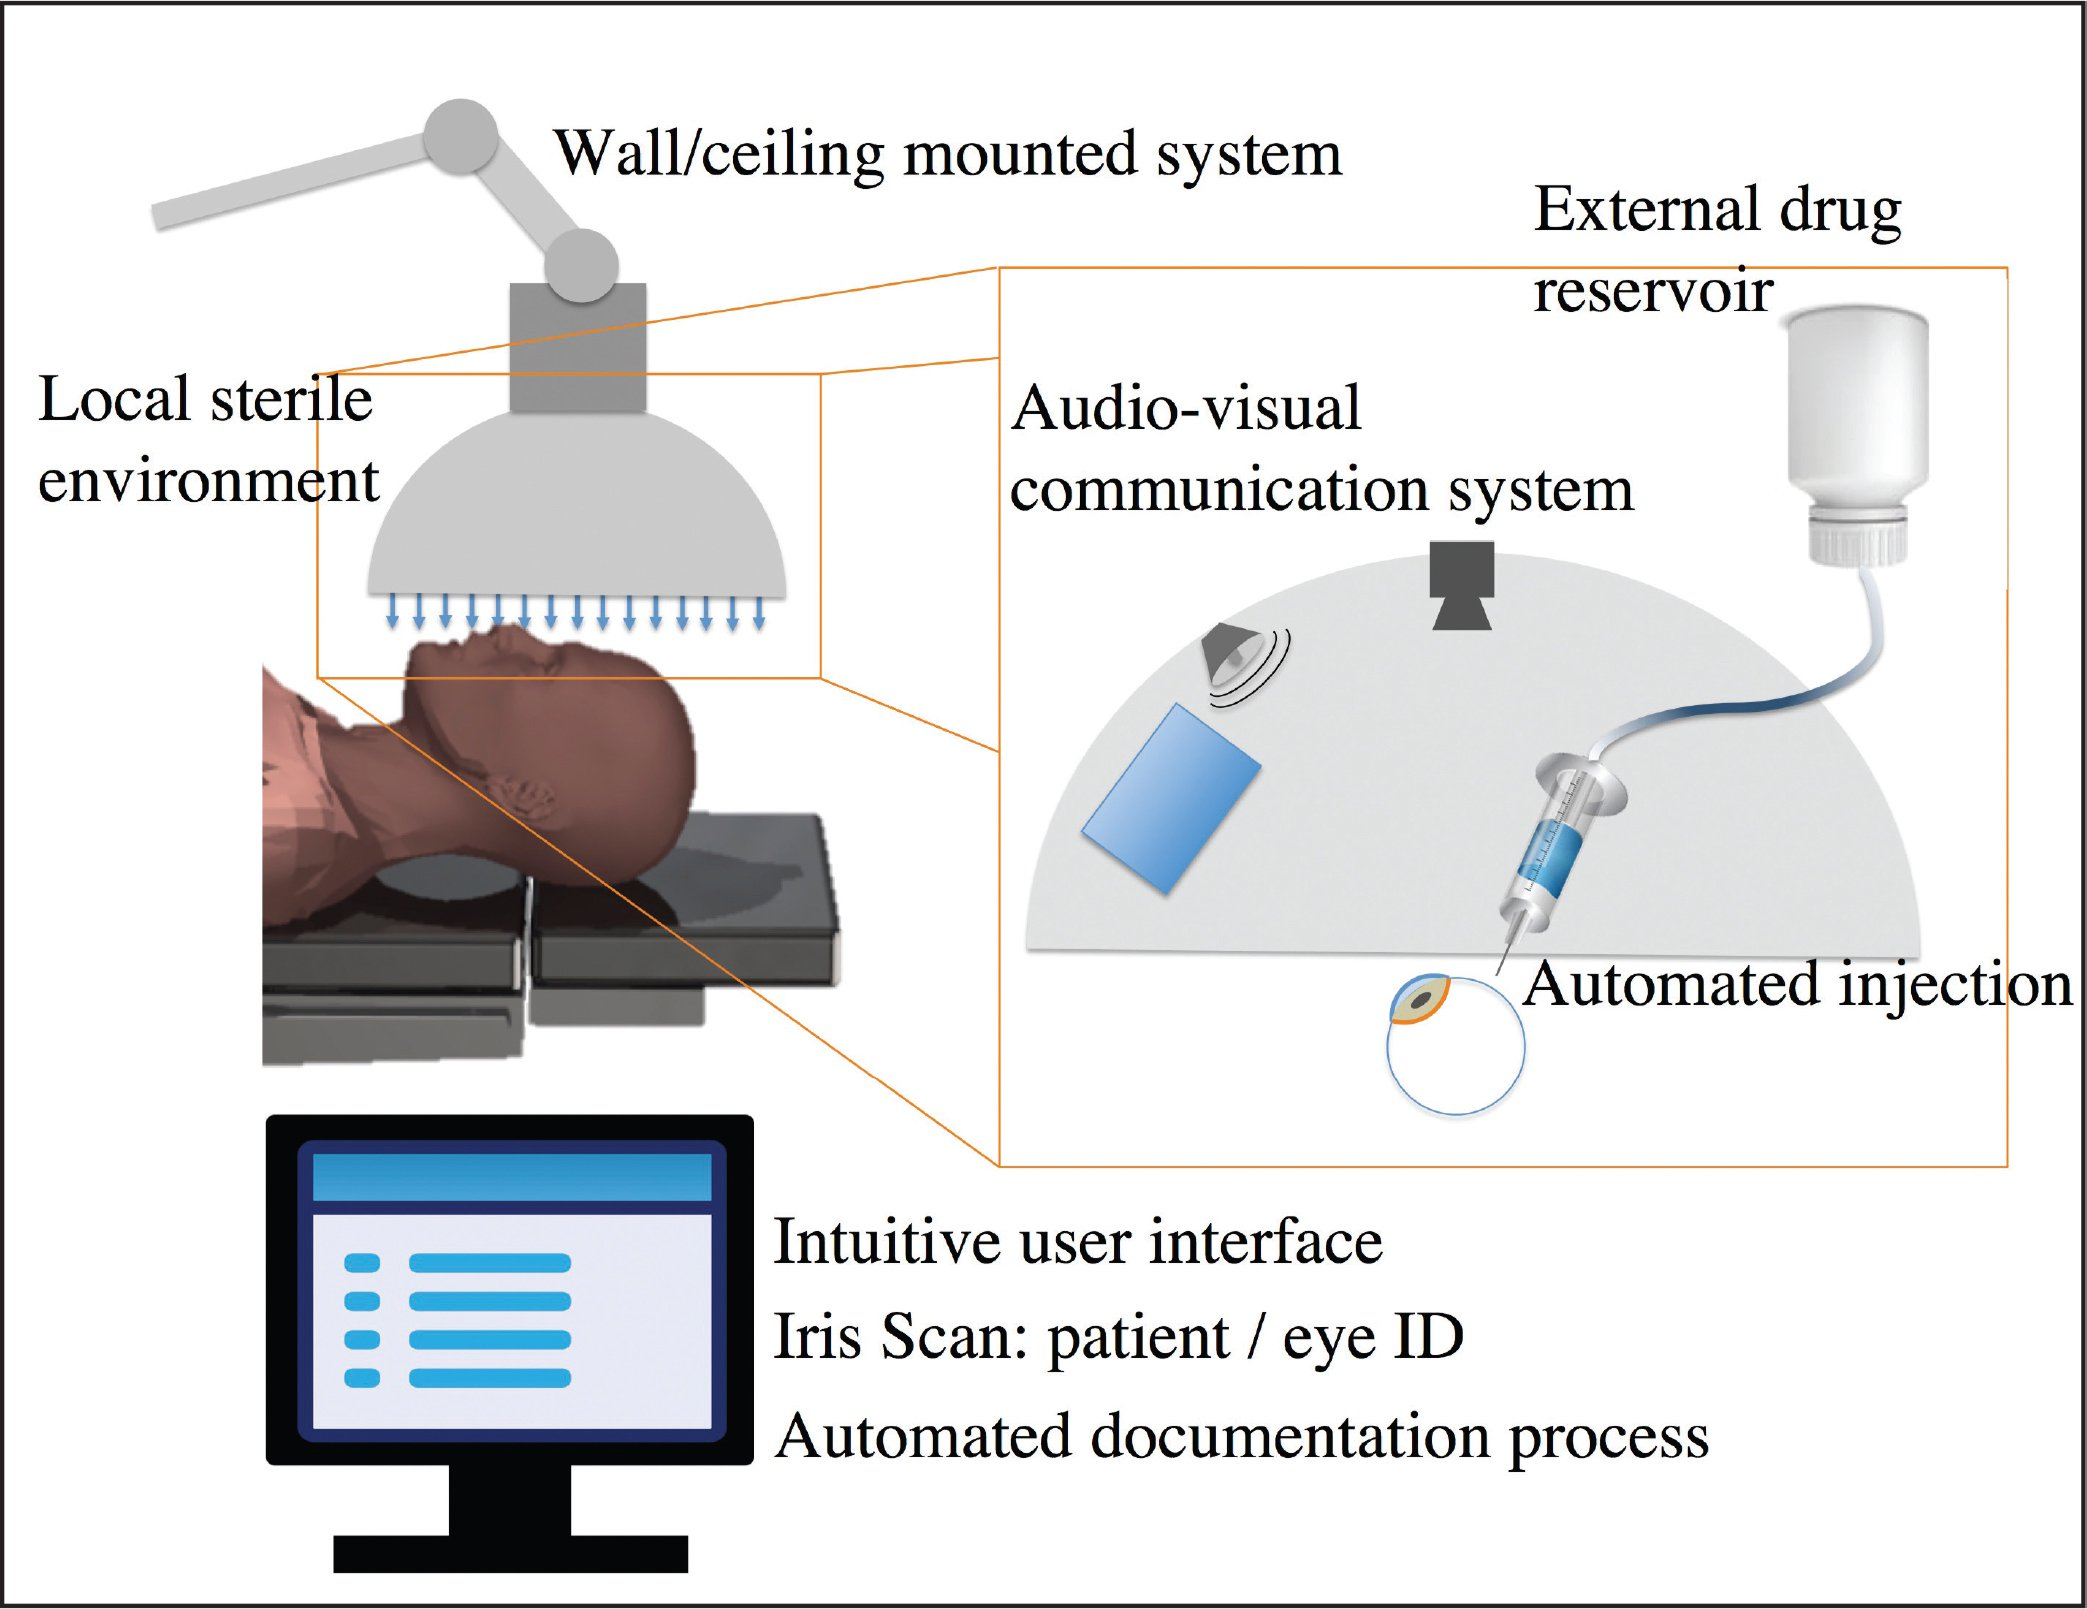 The system overview summarizes the system's functions, such as the general automated injection, the local sterile environment, a communication system, and the user interface.